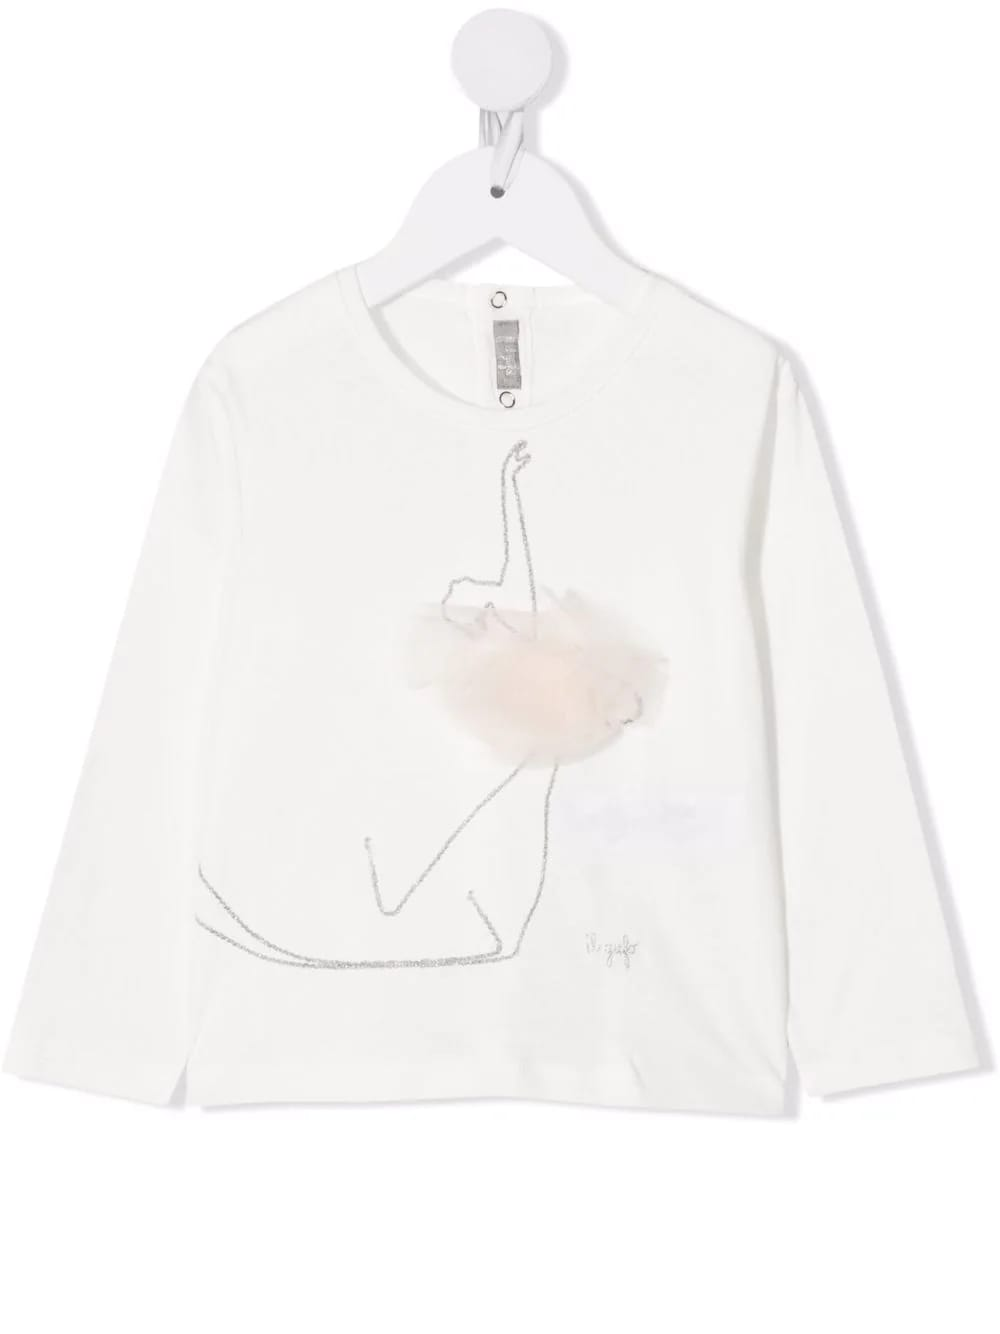 Kids White T-shirt With Skater Embroidery